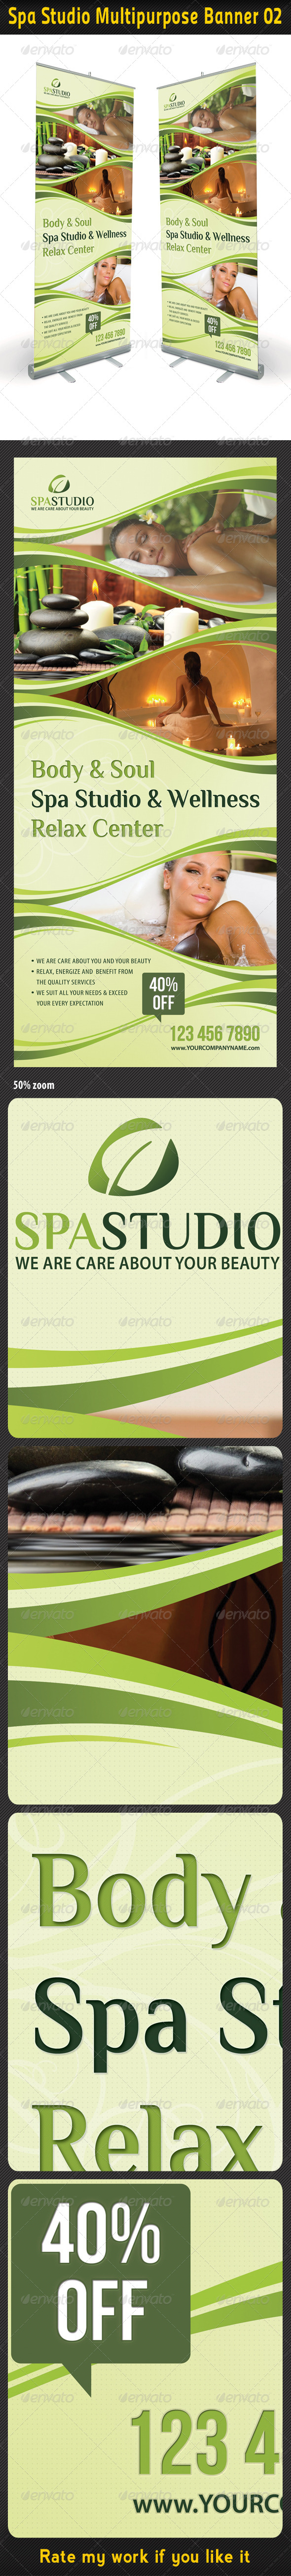 Spa Studio Multipurpose Banner 02 - Signage Print Templates